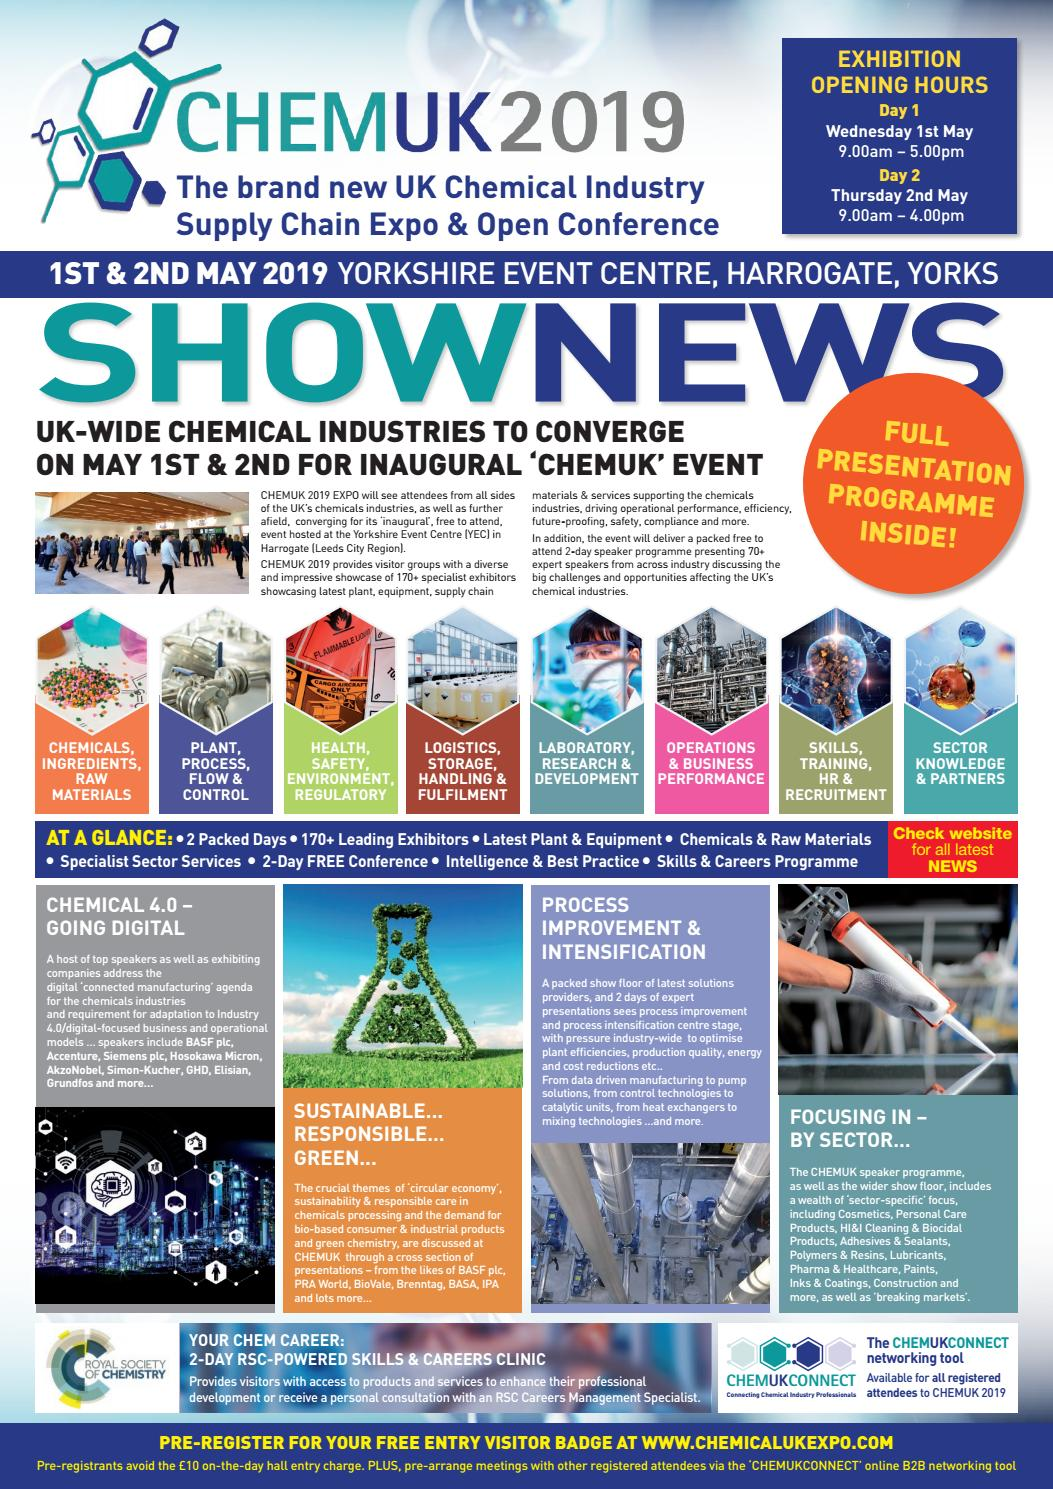 The CHEMUK 2019 Exhibition Show News by The Magazine